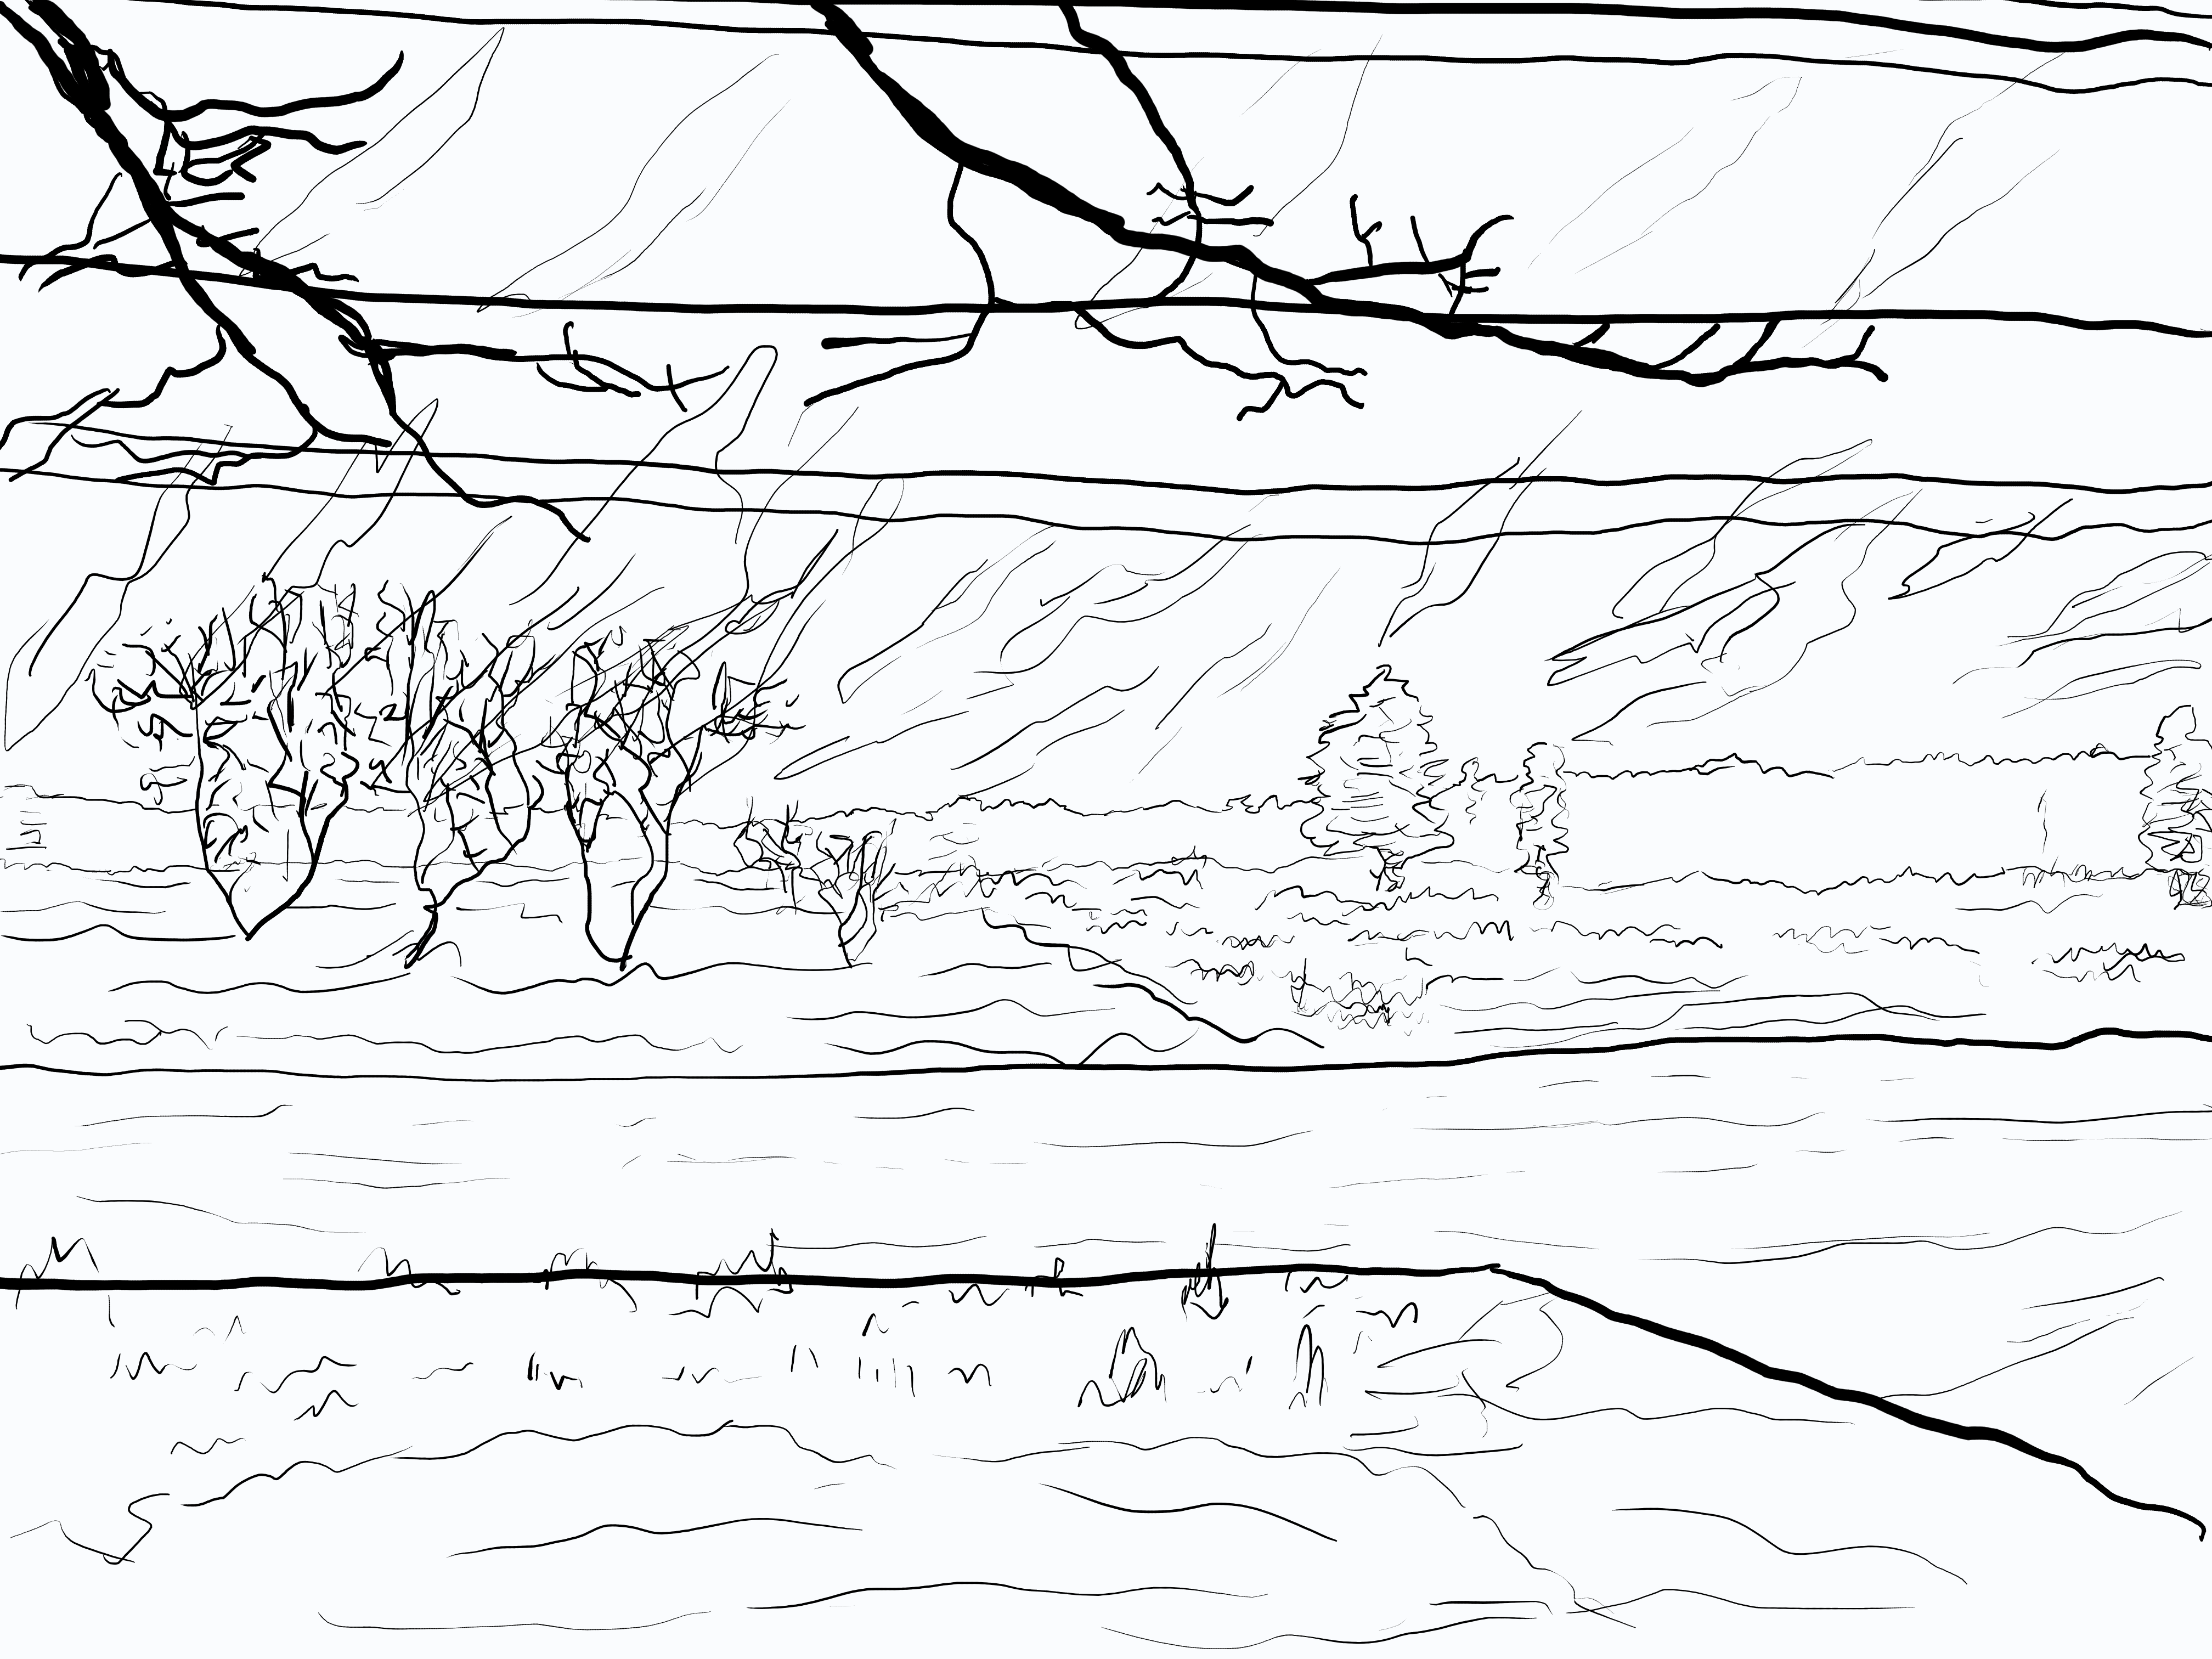 Scenery sketch